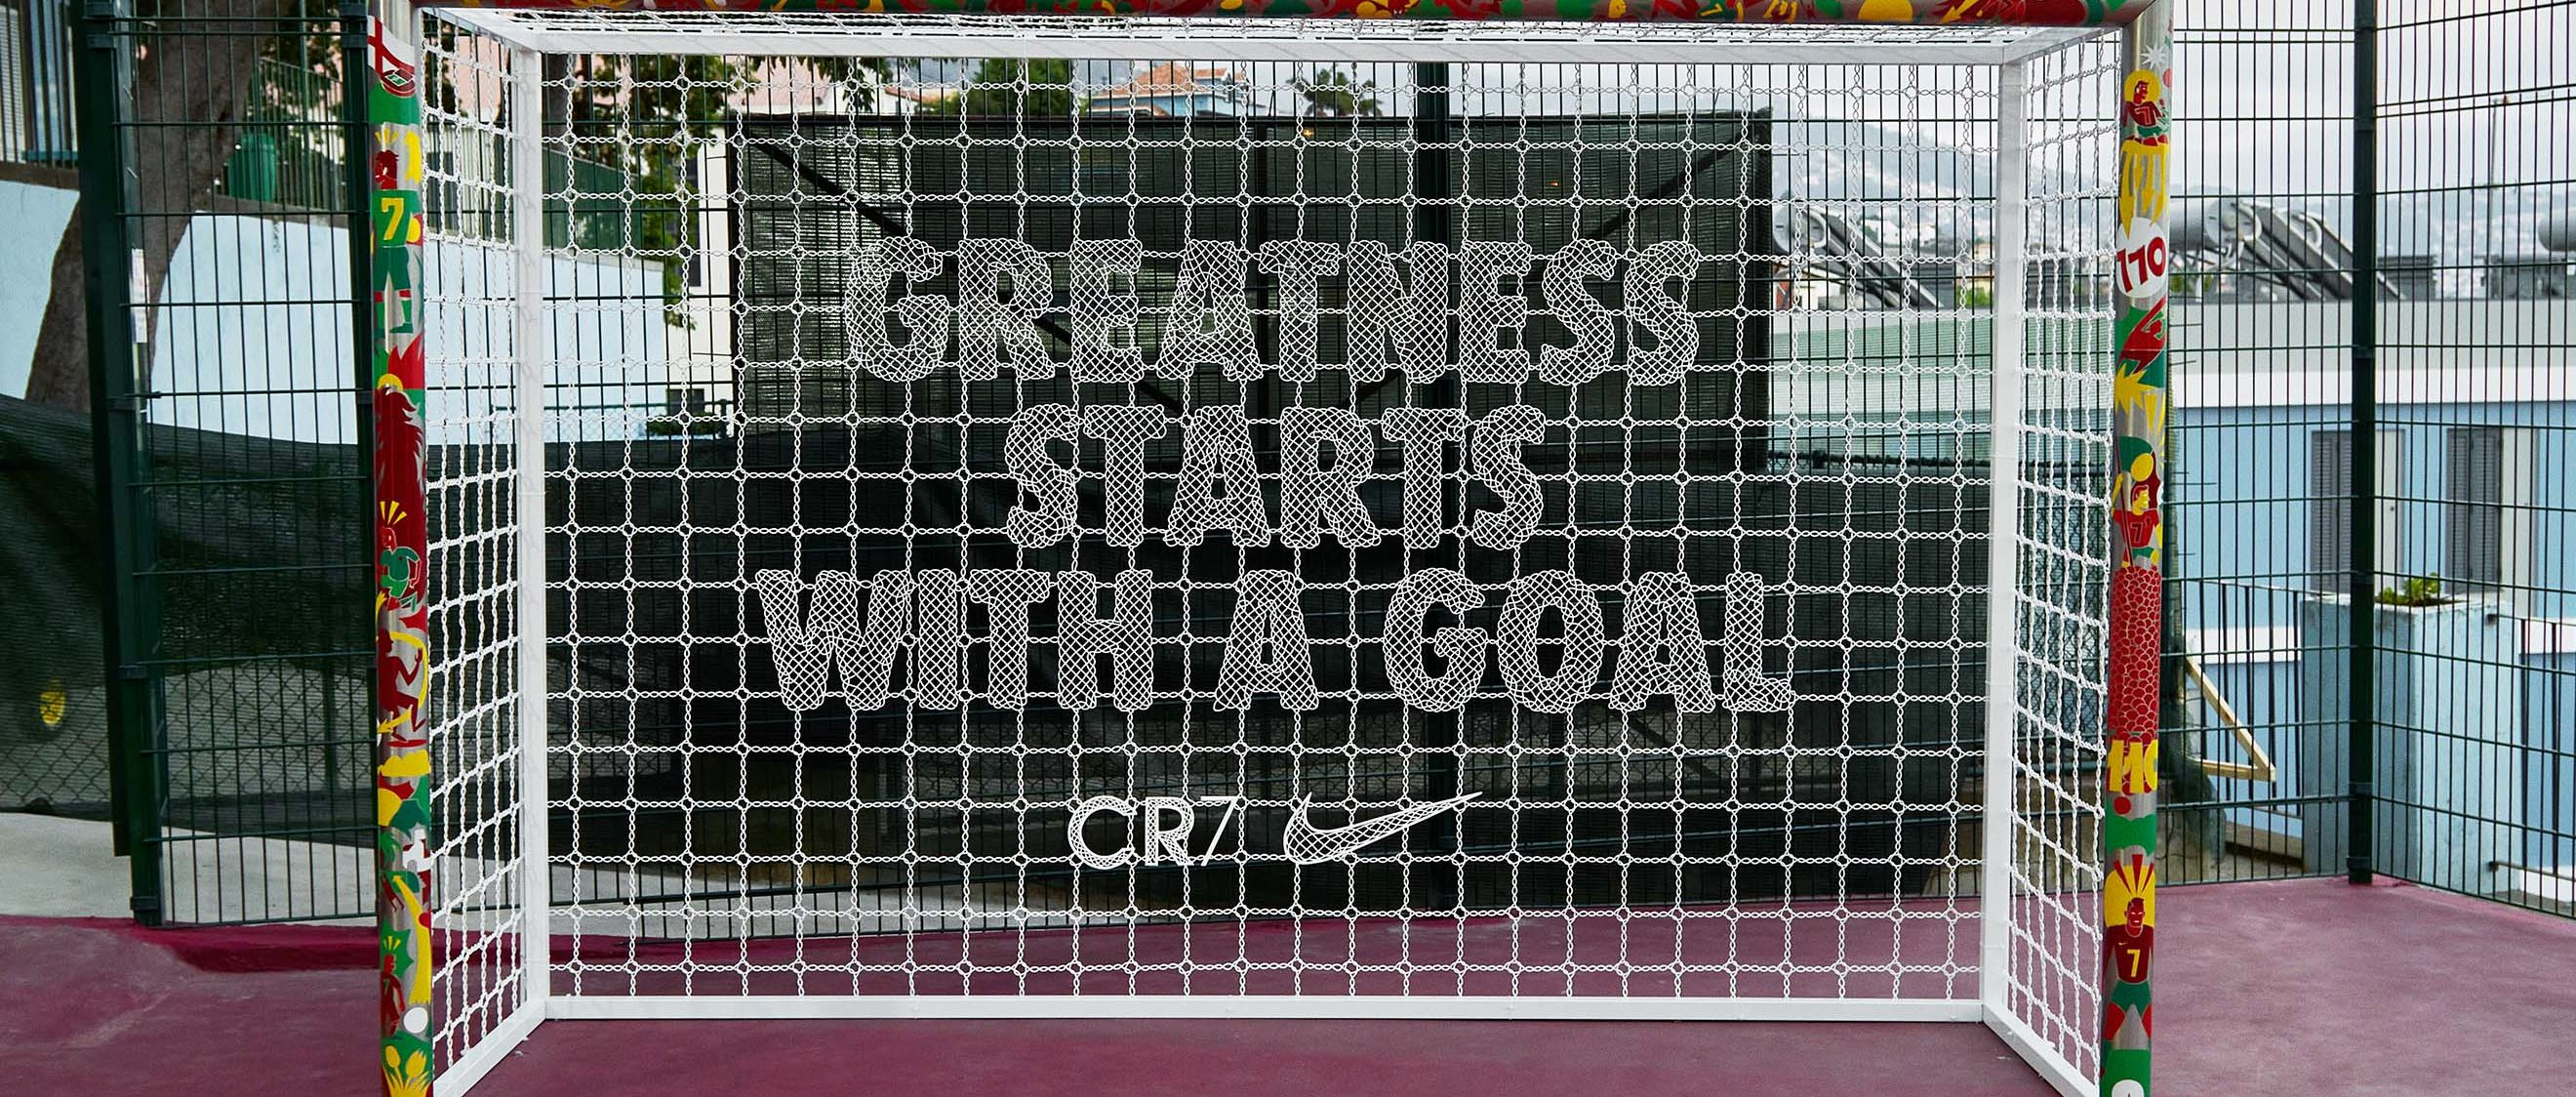 Greatness Starts With A Goal